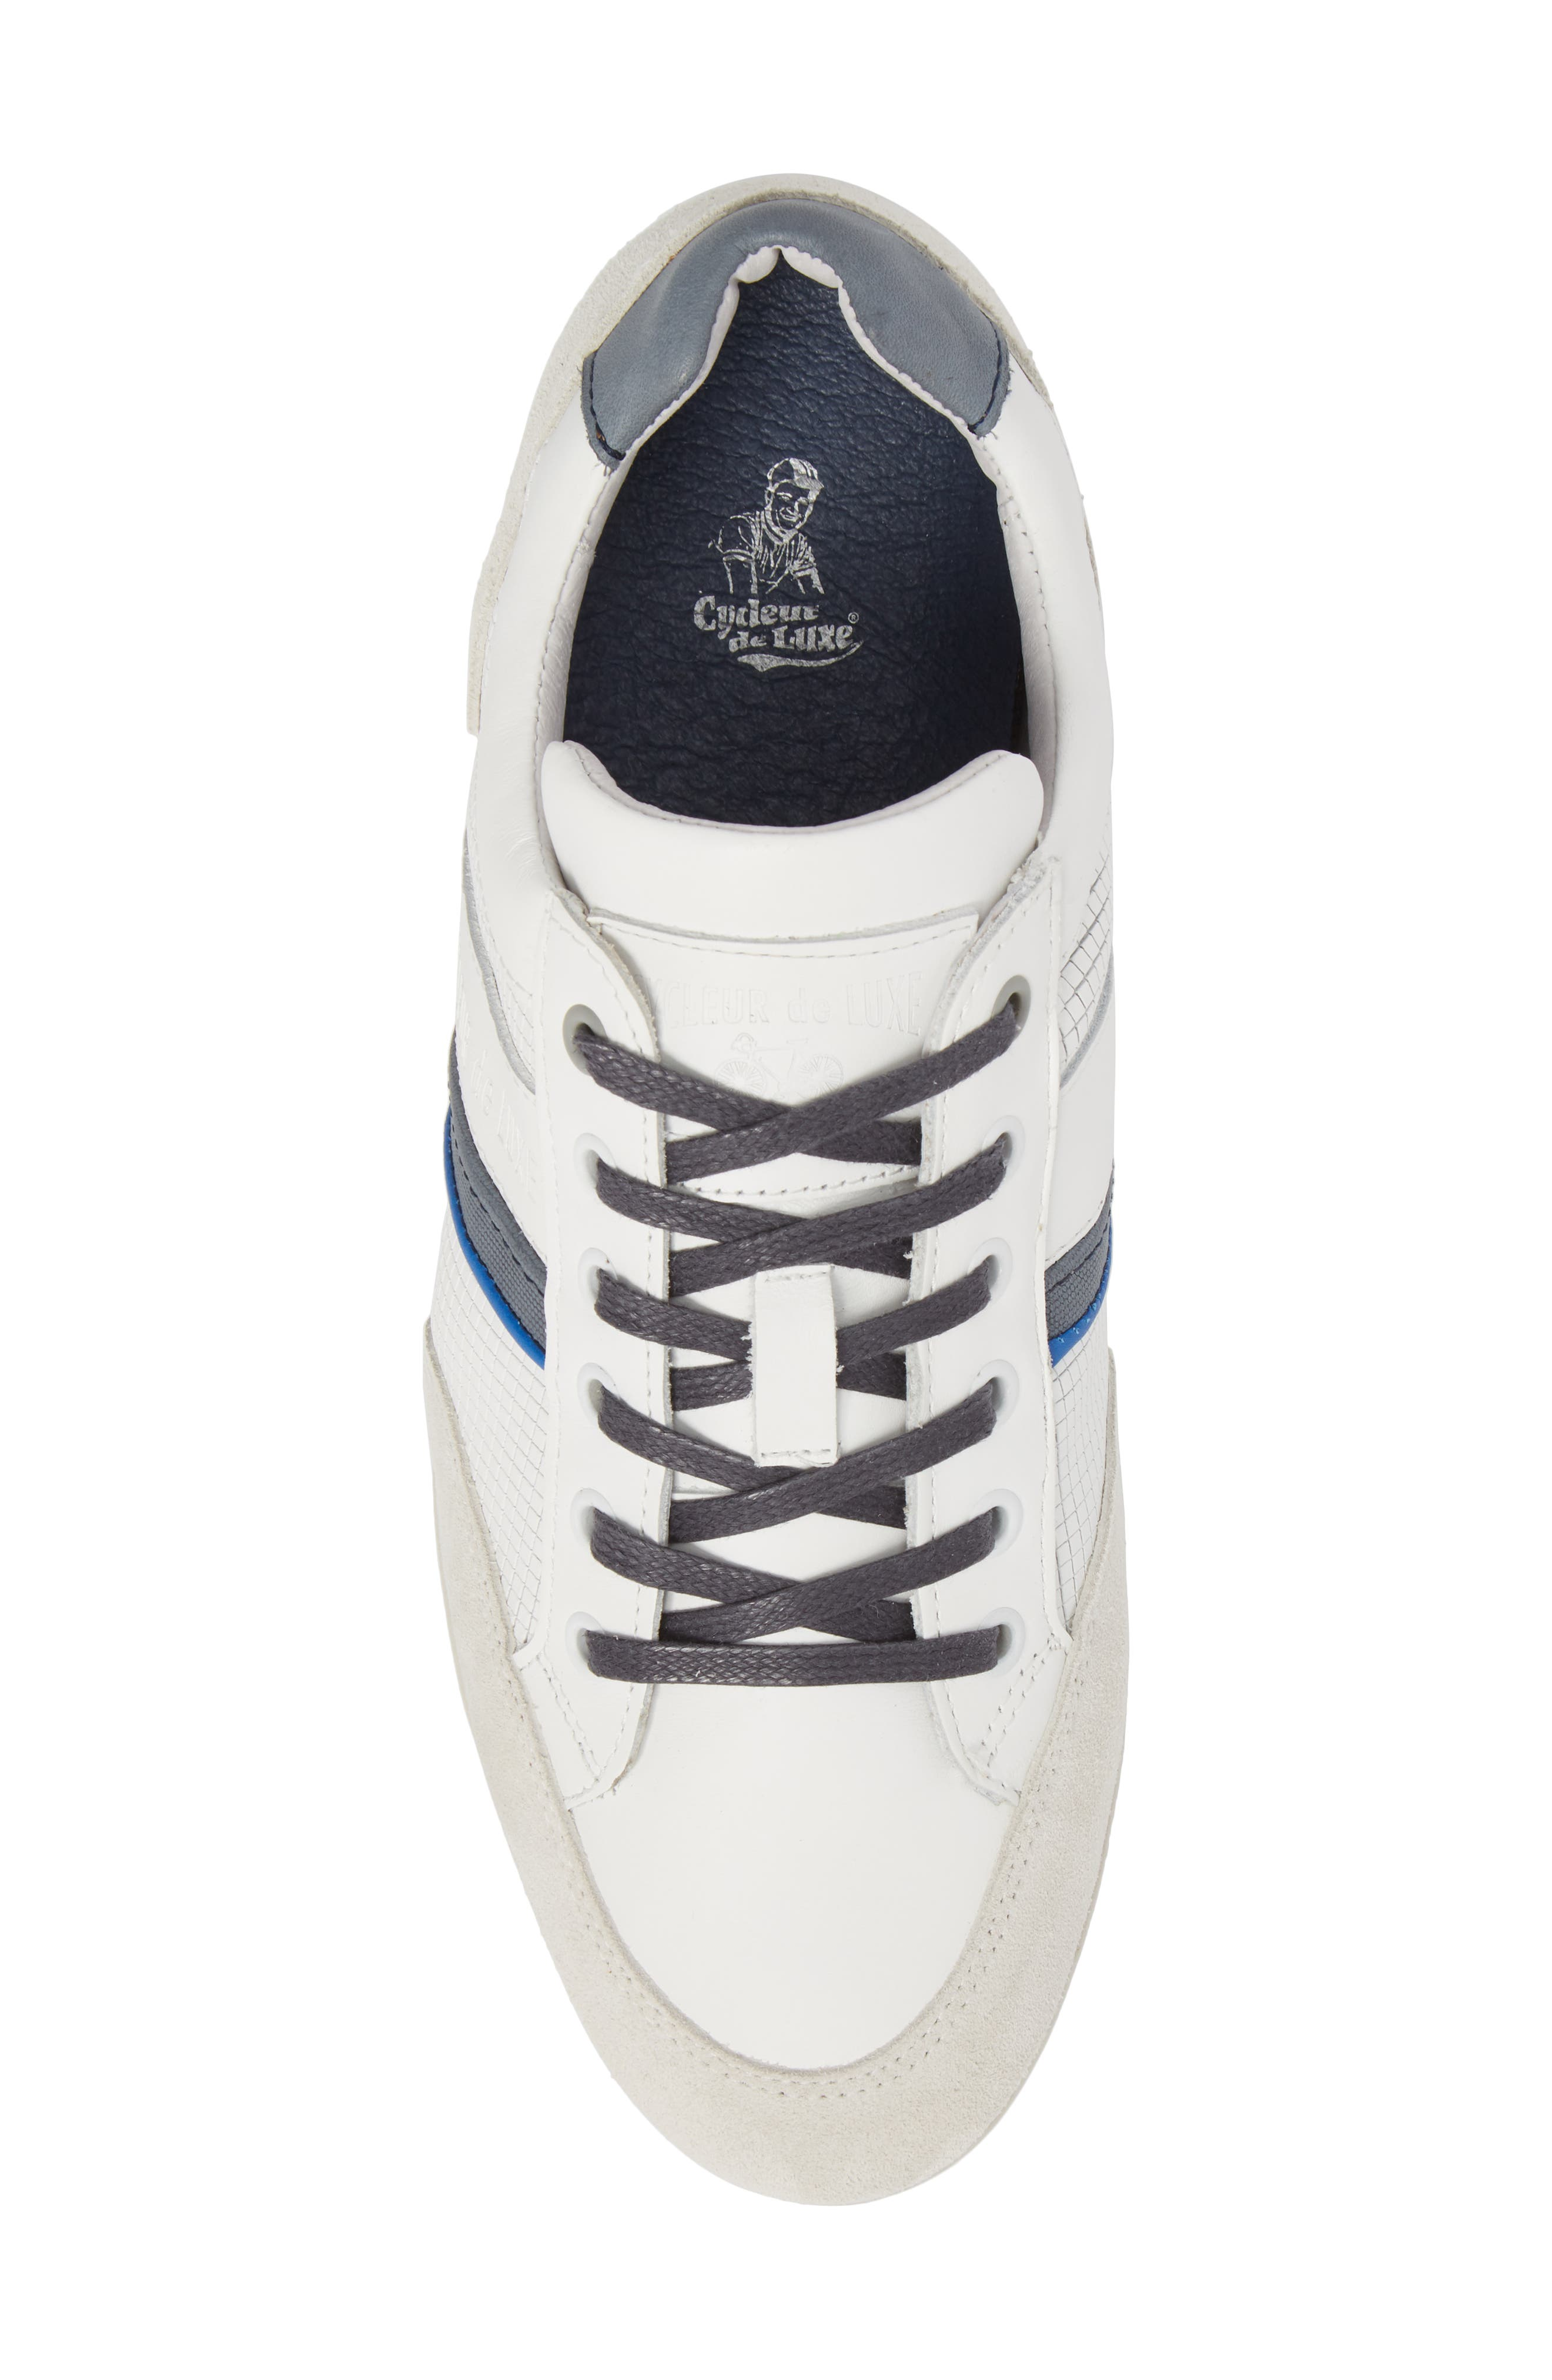 Bahamas Low Top Sneaker,                             Alternate thumbnail 5, color,                             Off White/ Navy Leather